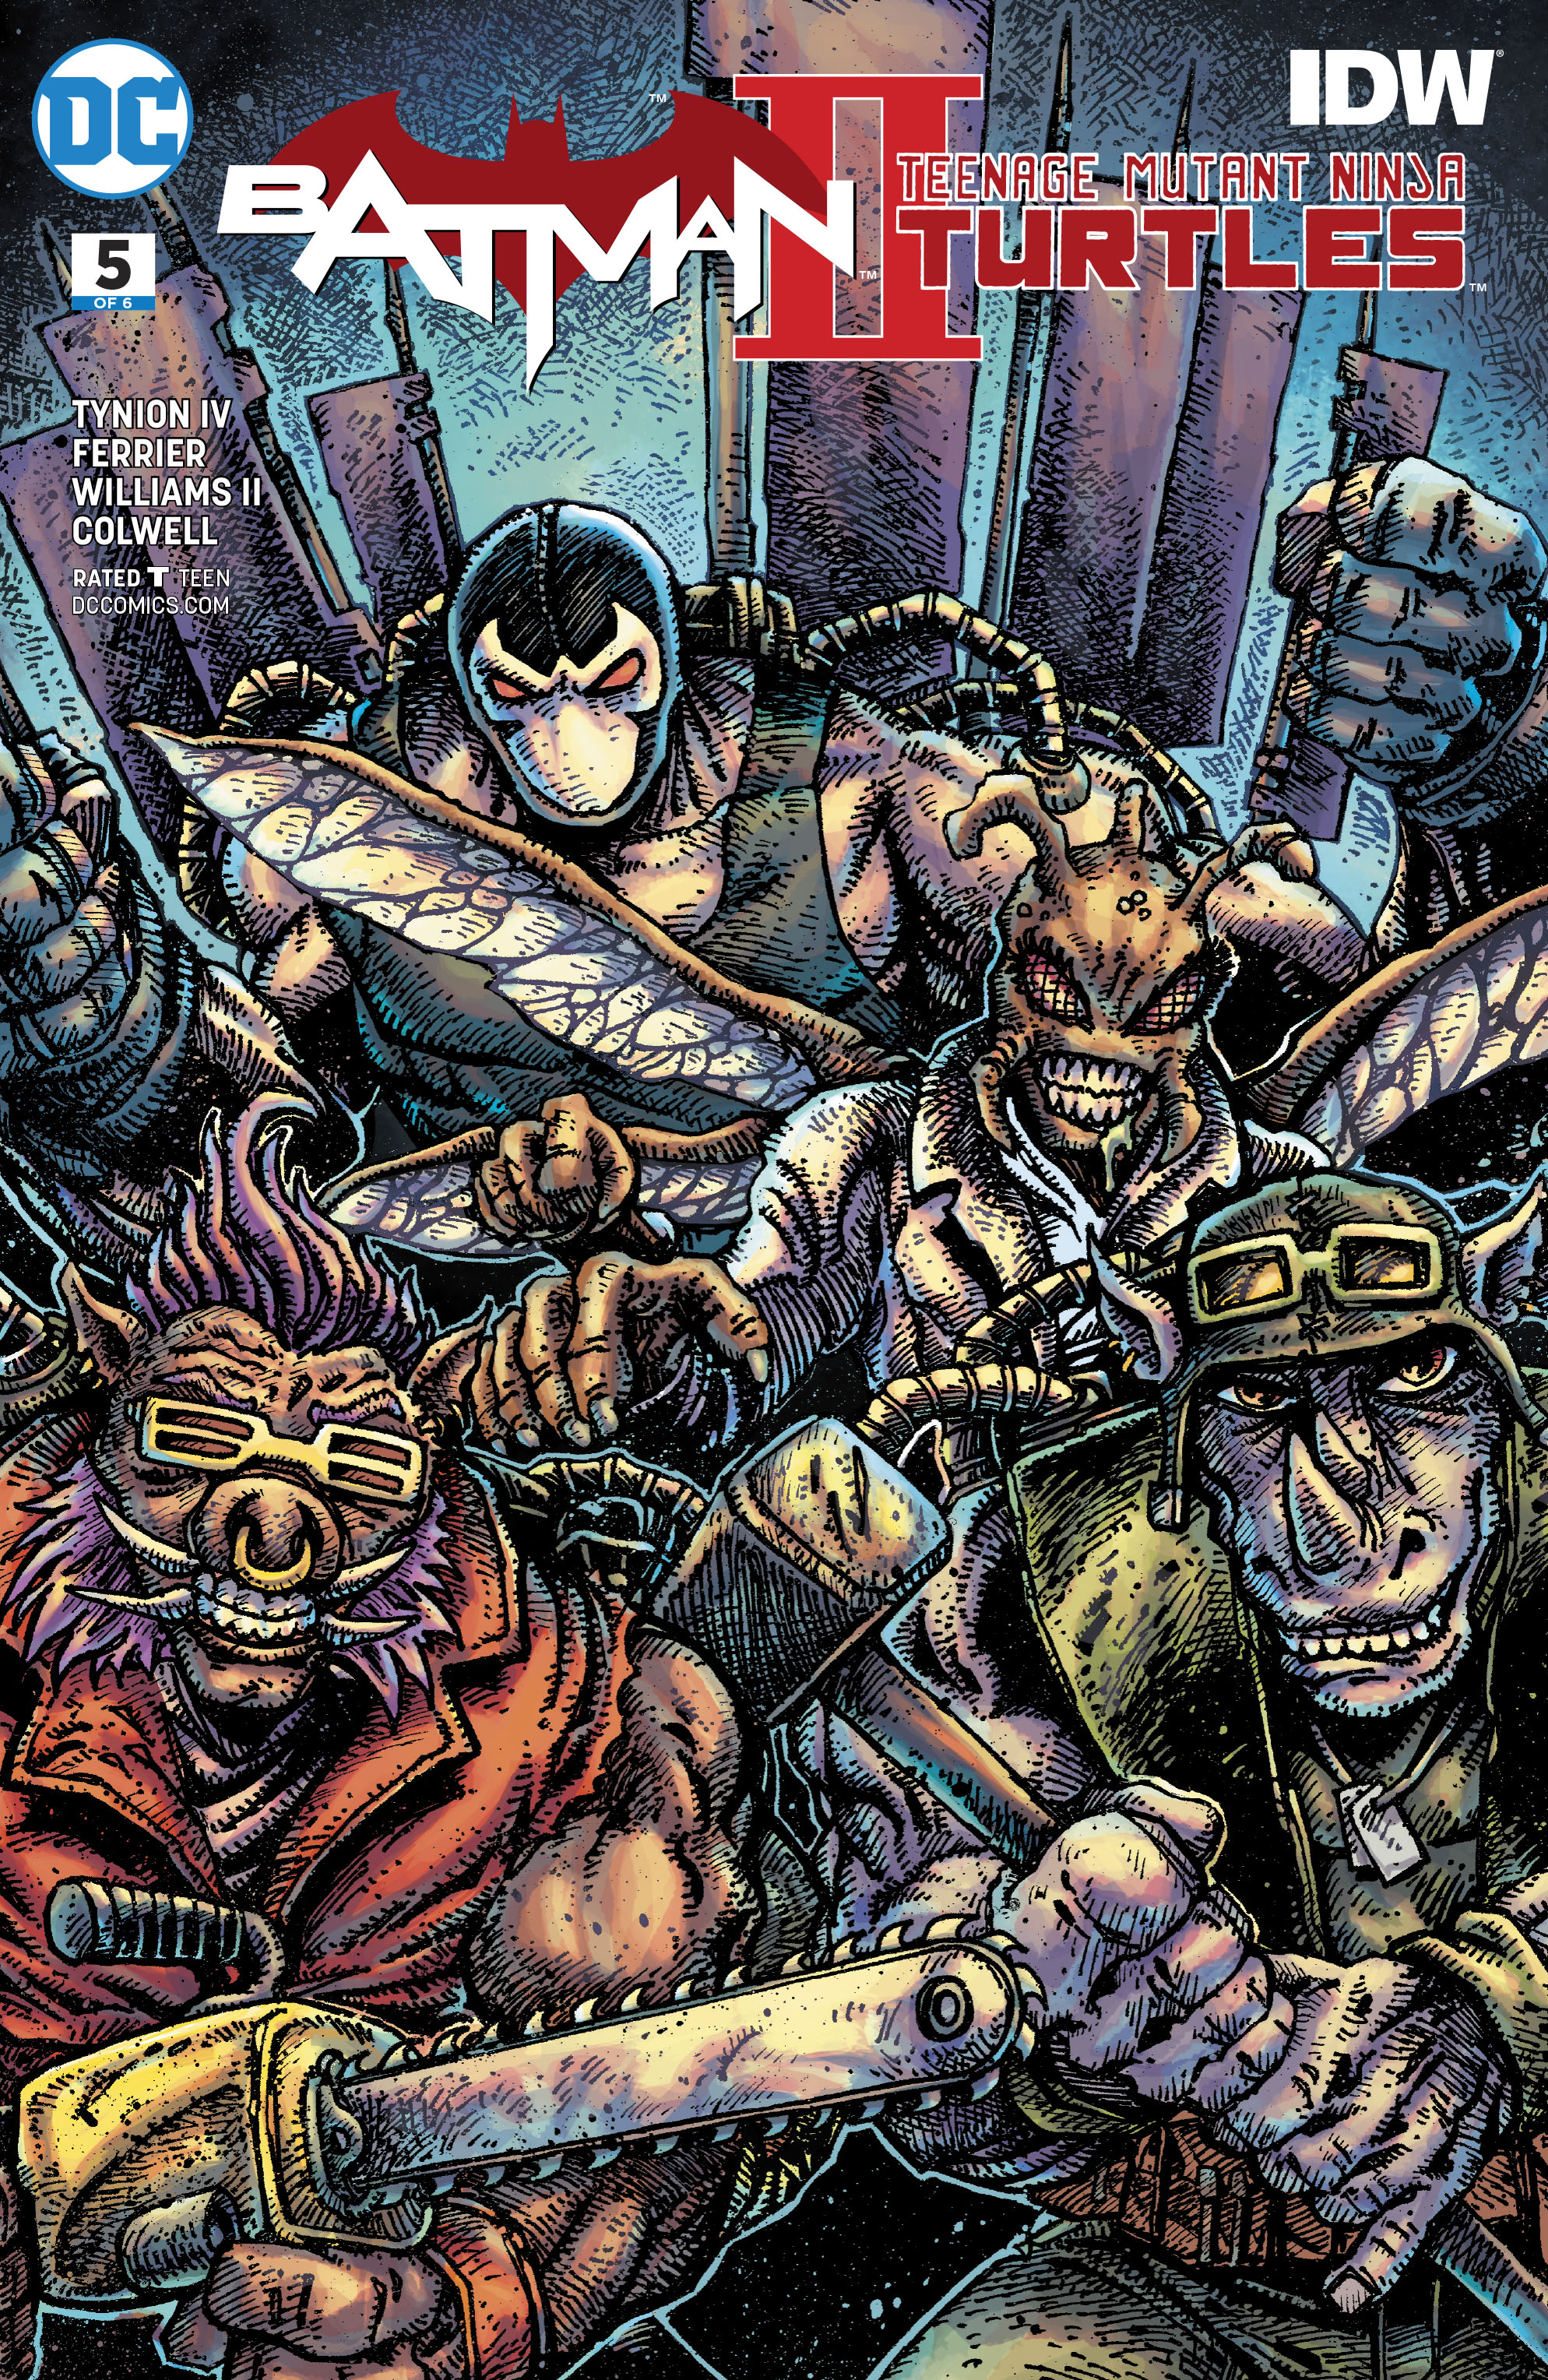 BATMAN TEENAGE MUTANT NINJA TURTLES II #5 (OF 6) VAR ED